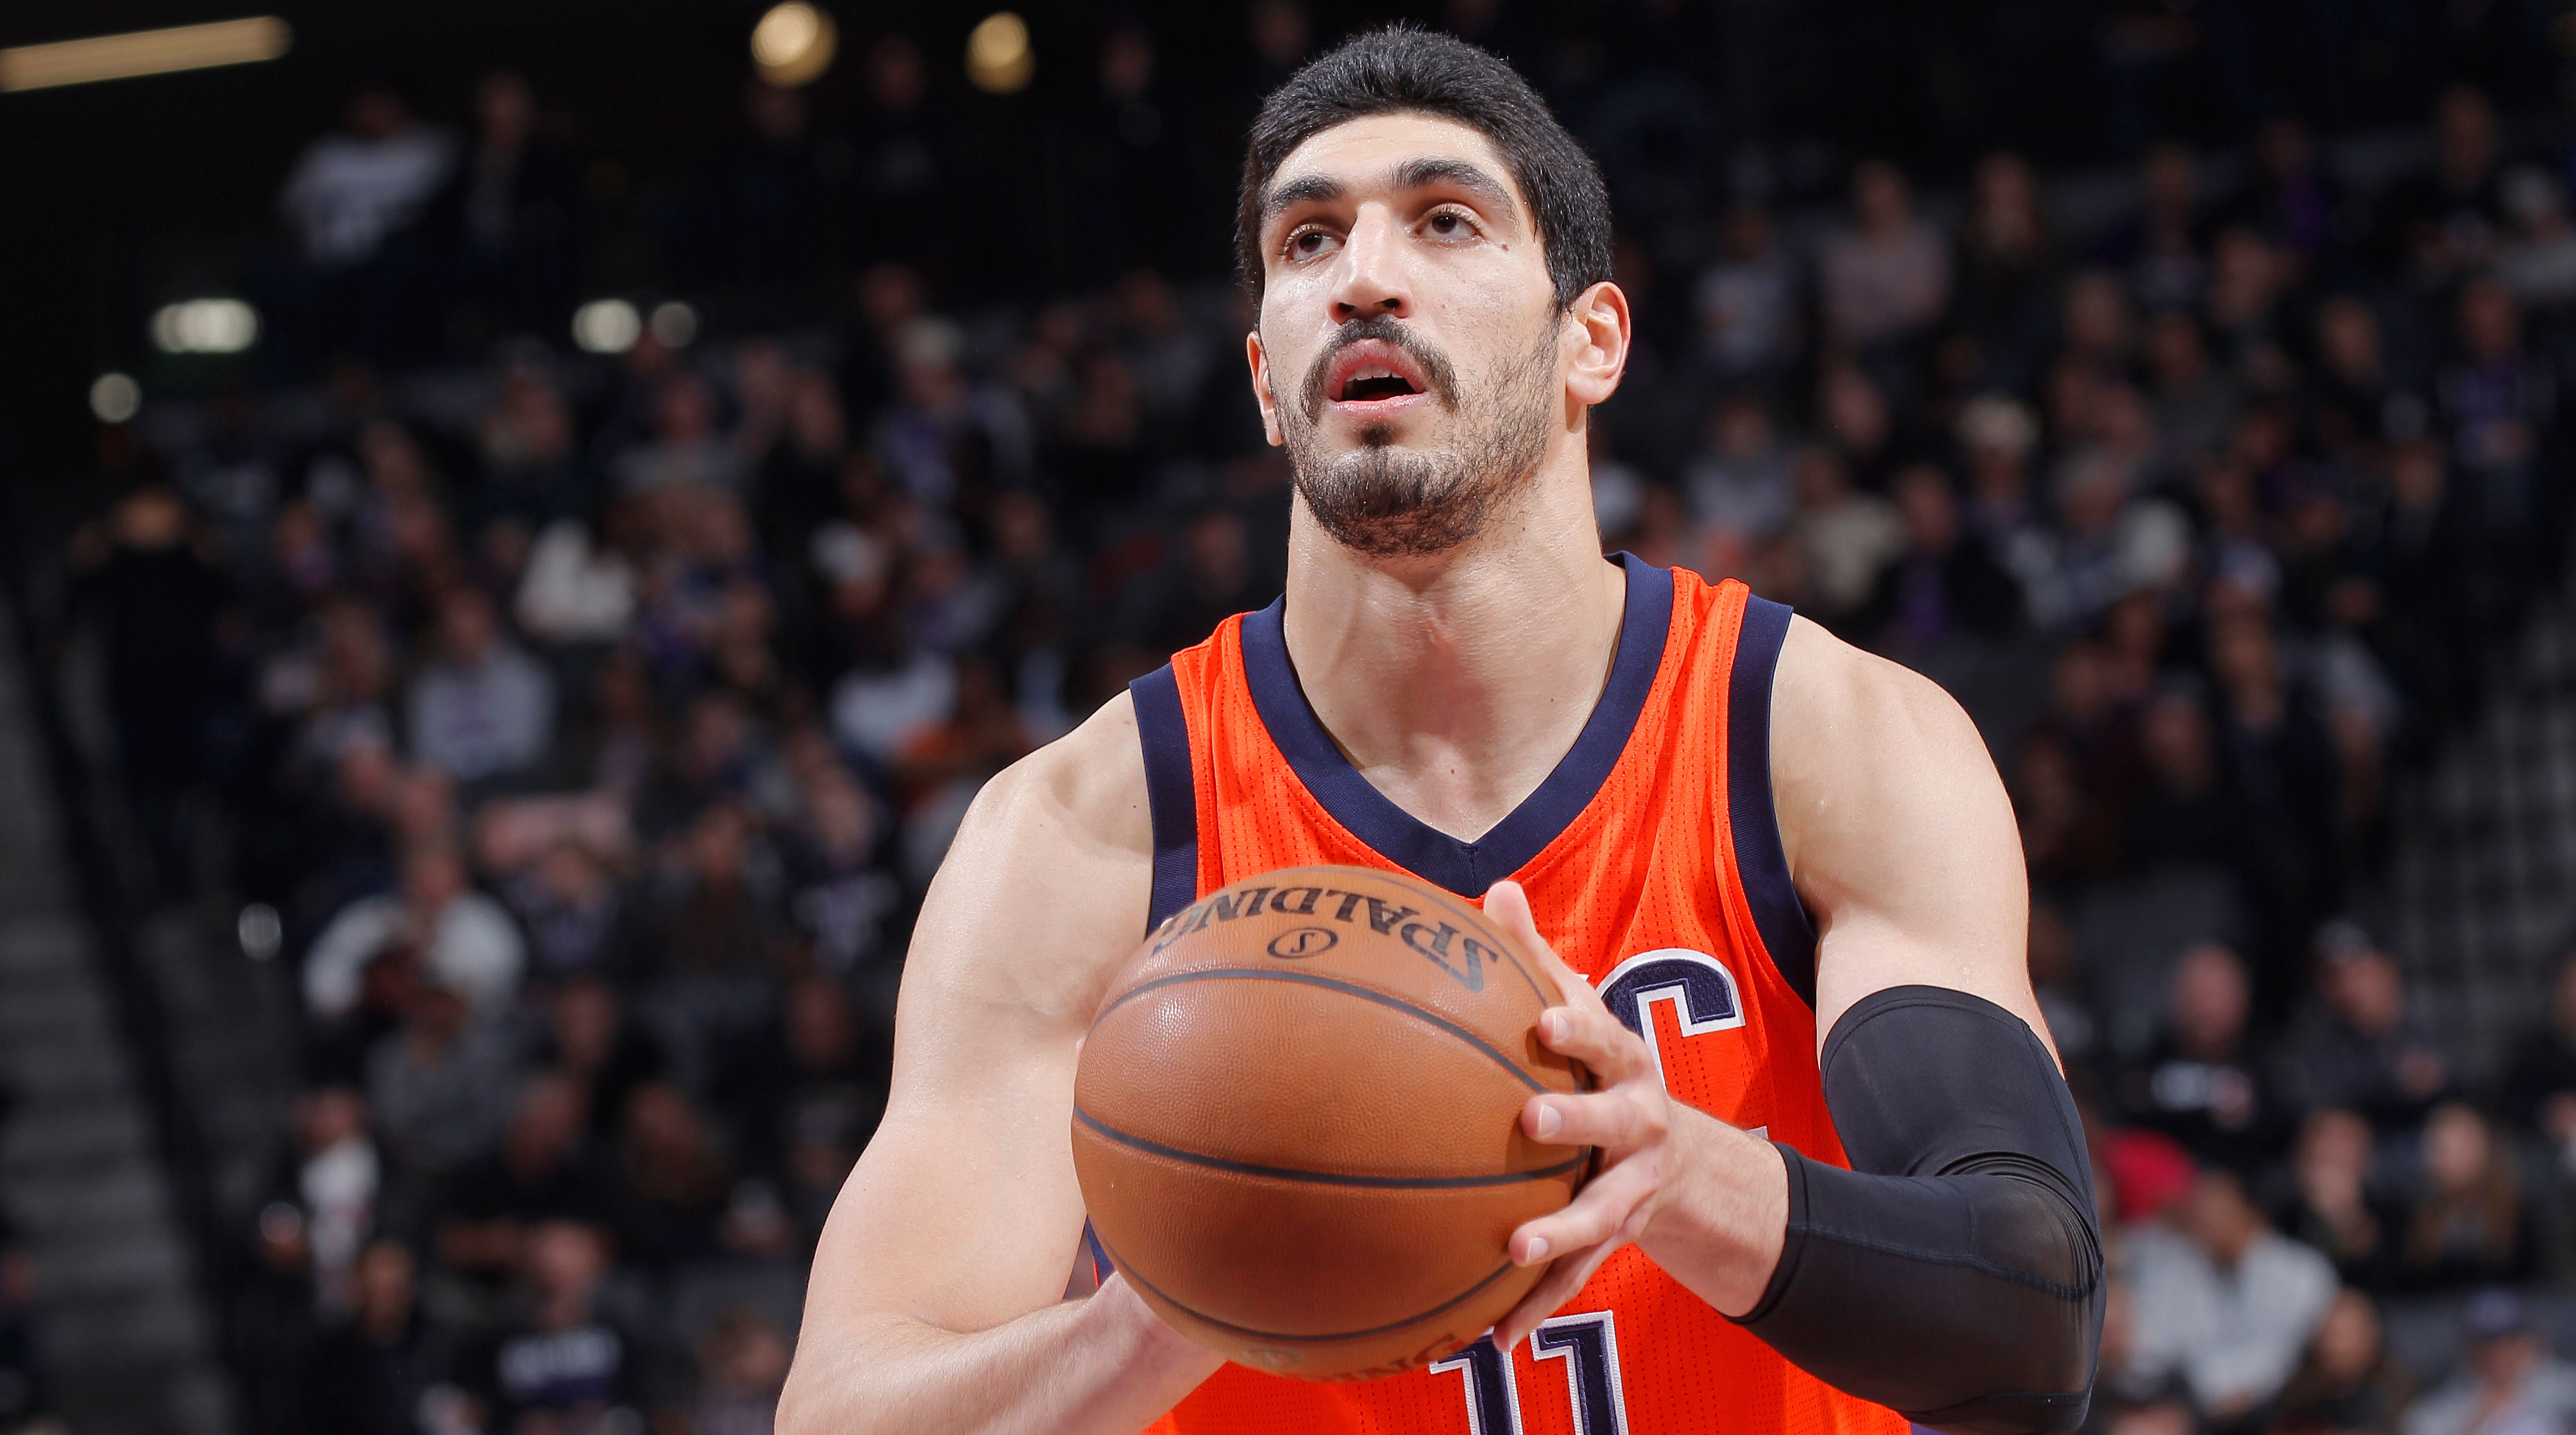 enes kanter wanted for arrest in turkey over political